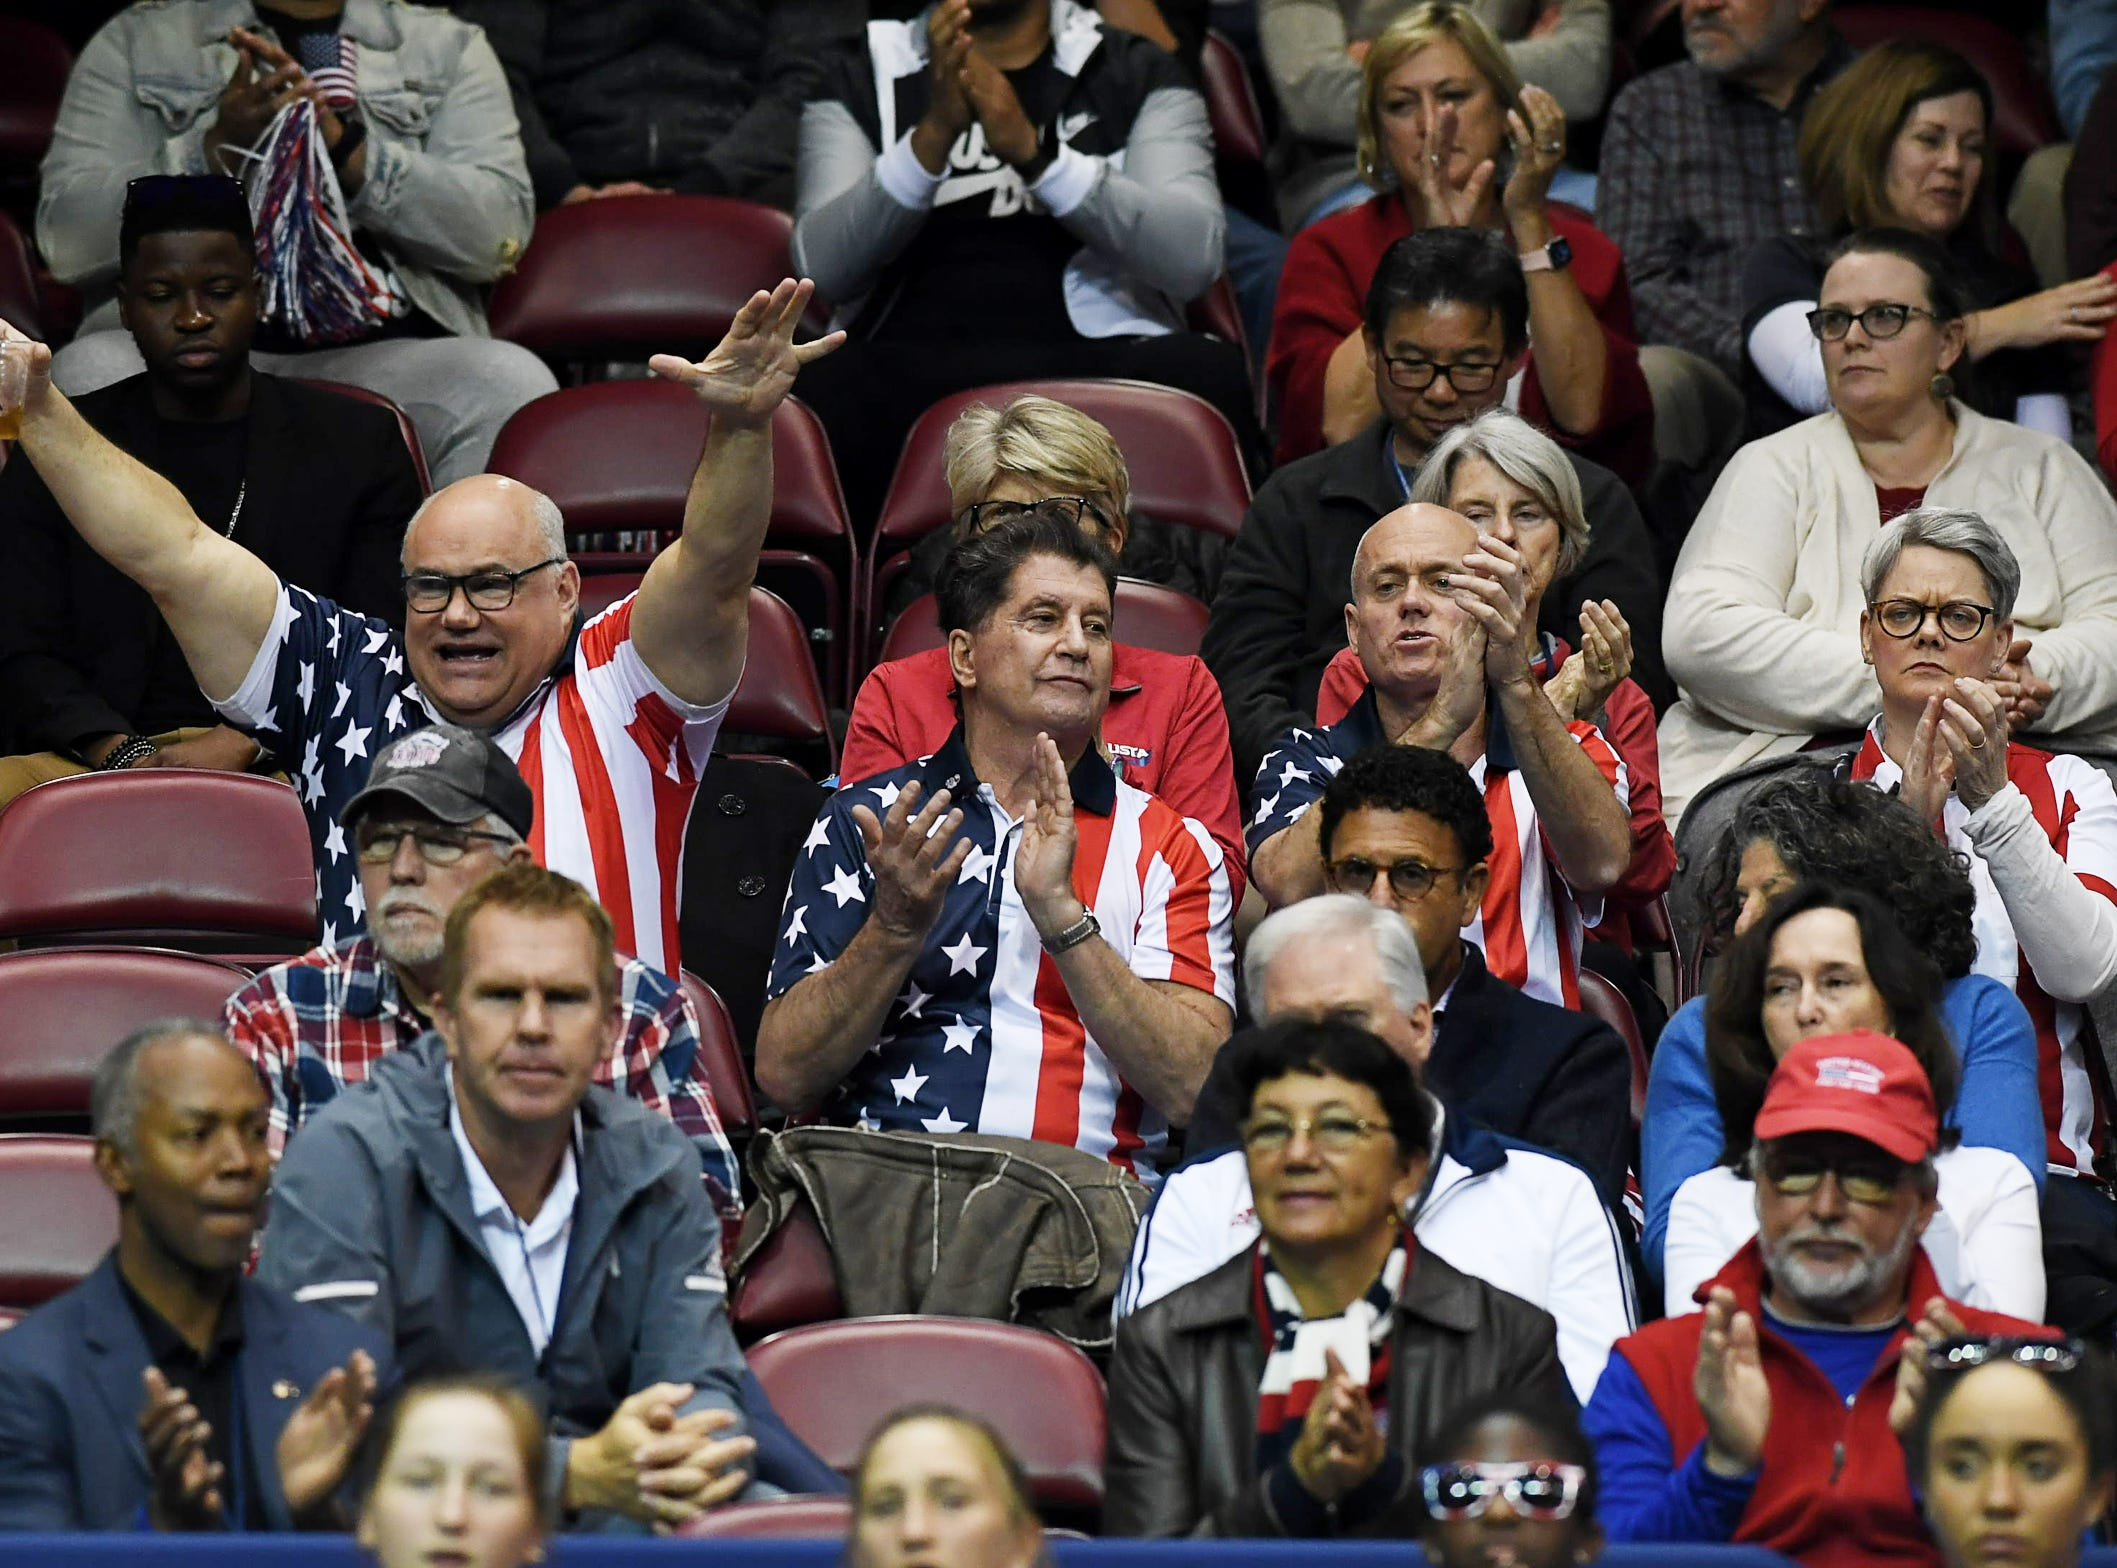 Scenes from the first day of Fed Cup competition between the US and Australia at the US Cellular Center Feb. 9, 2019.